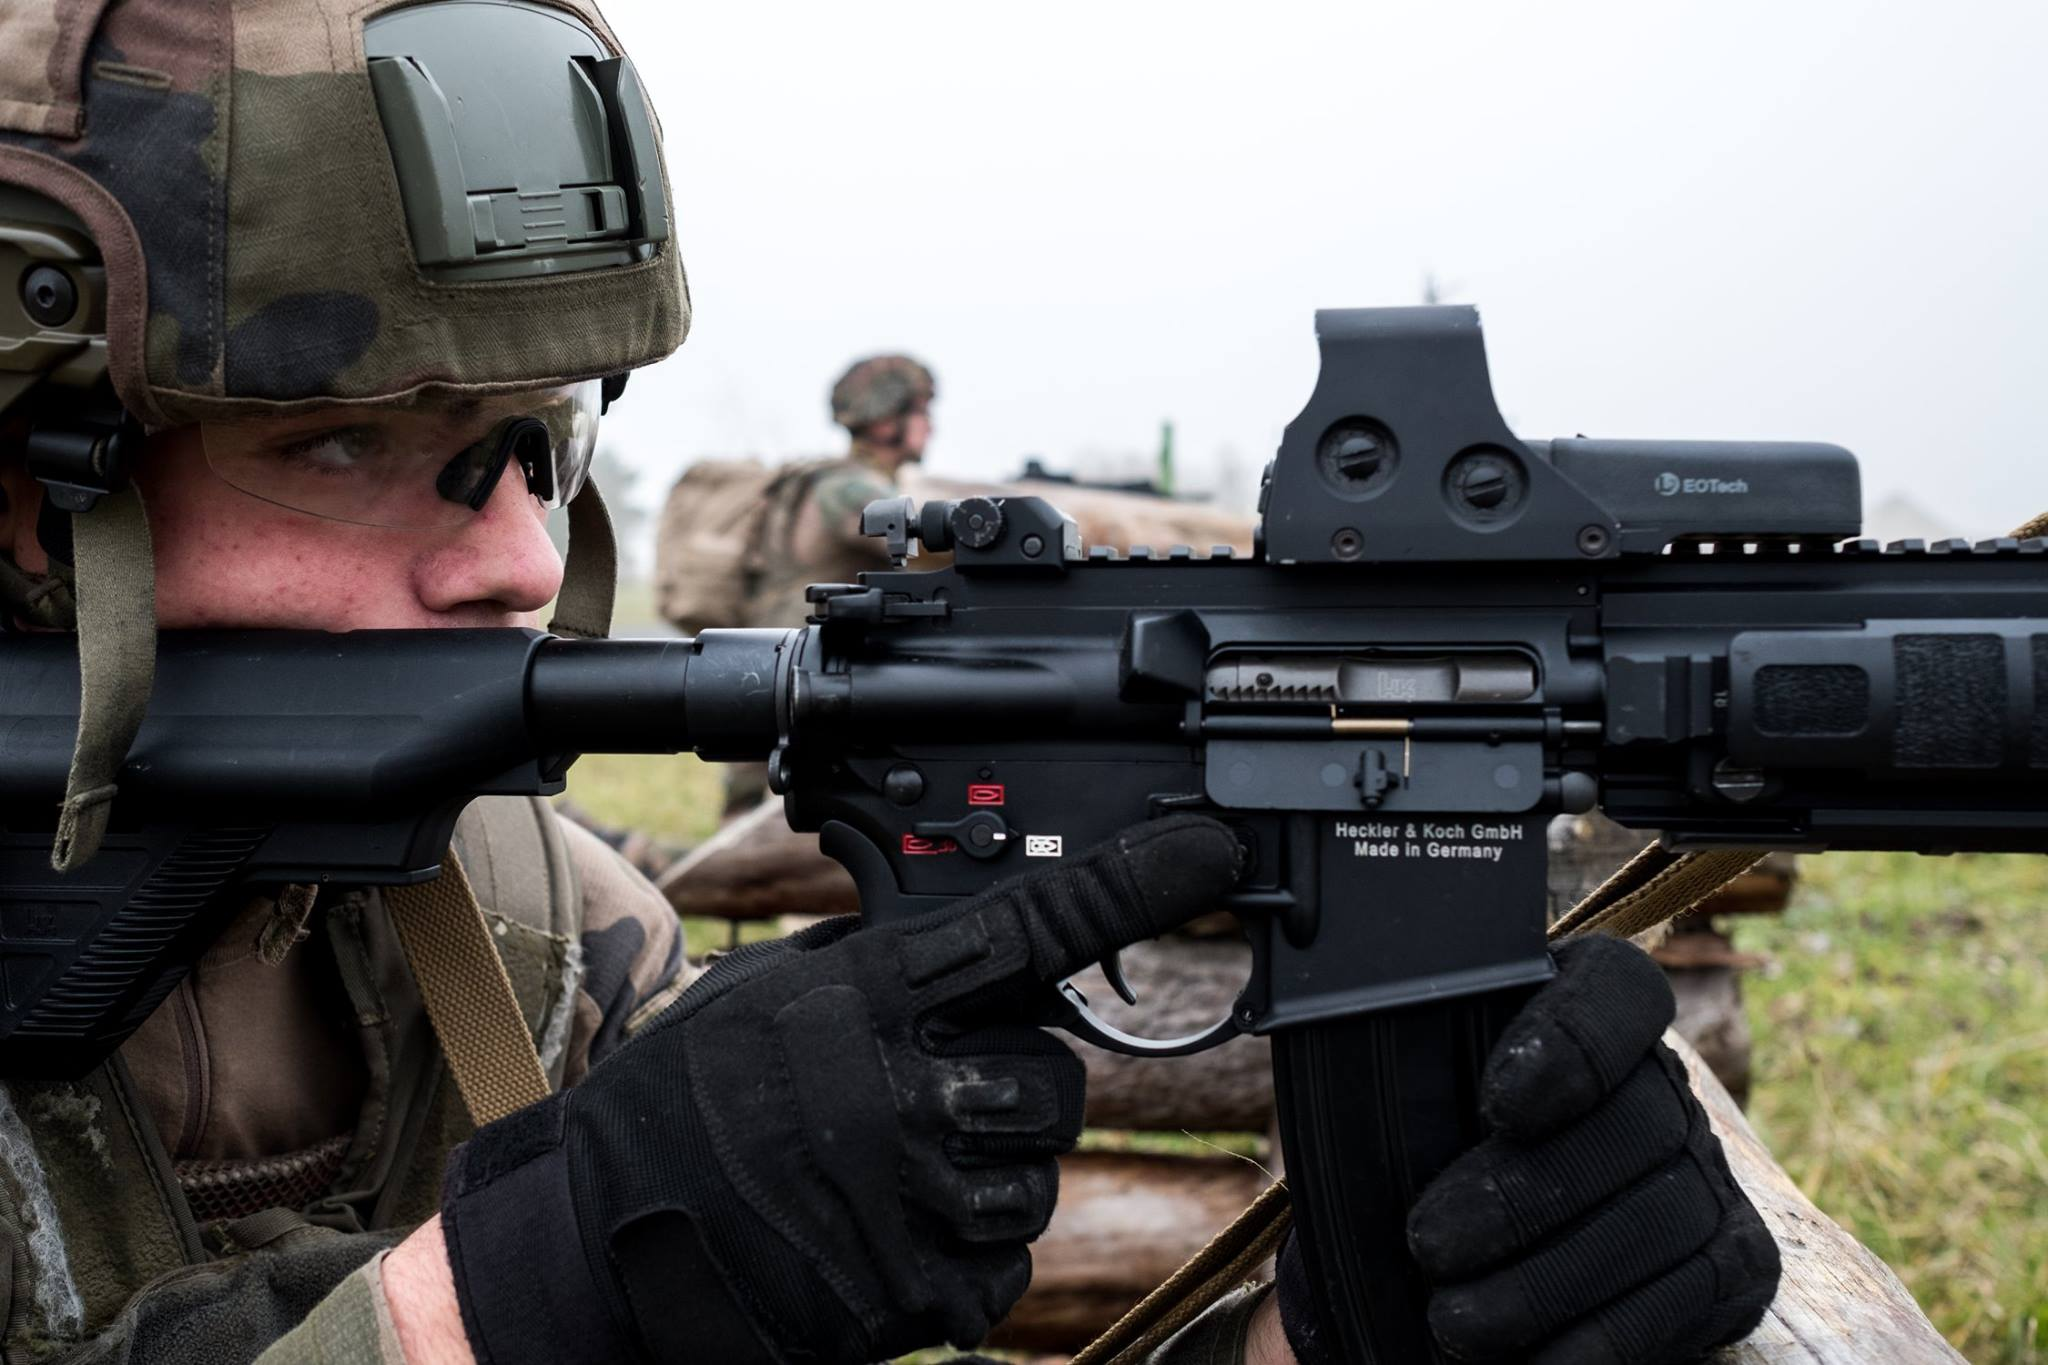 French Army HK416F Rifles Deployed with Eotech 552